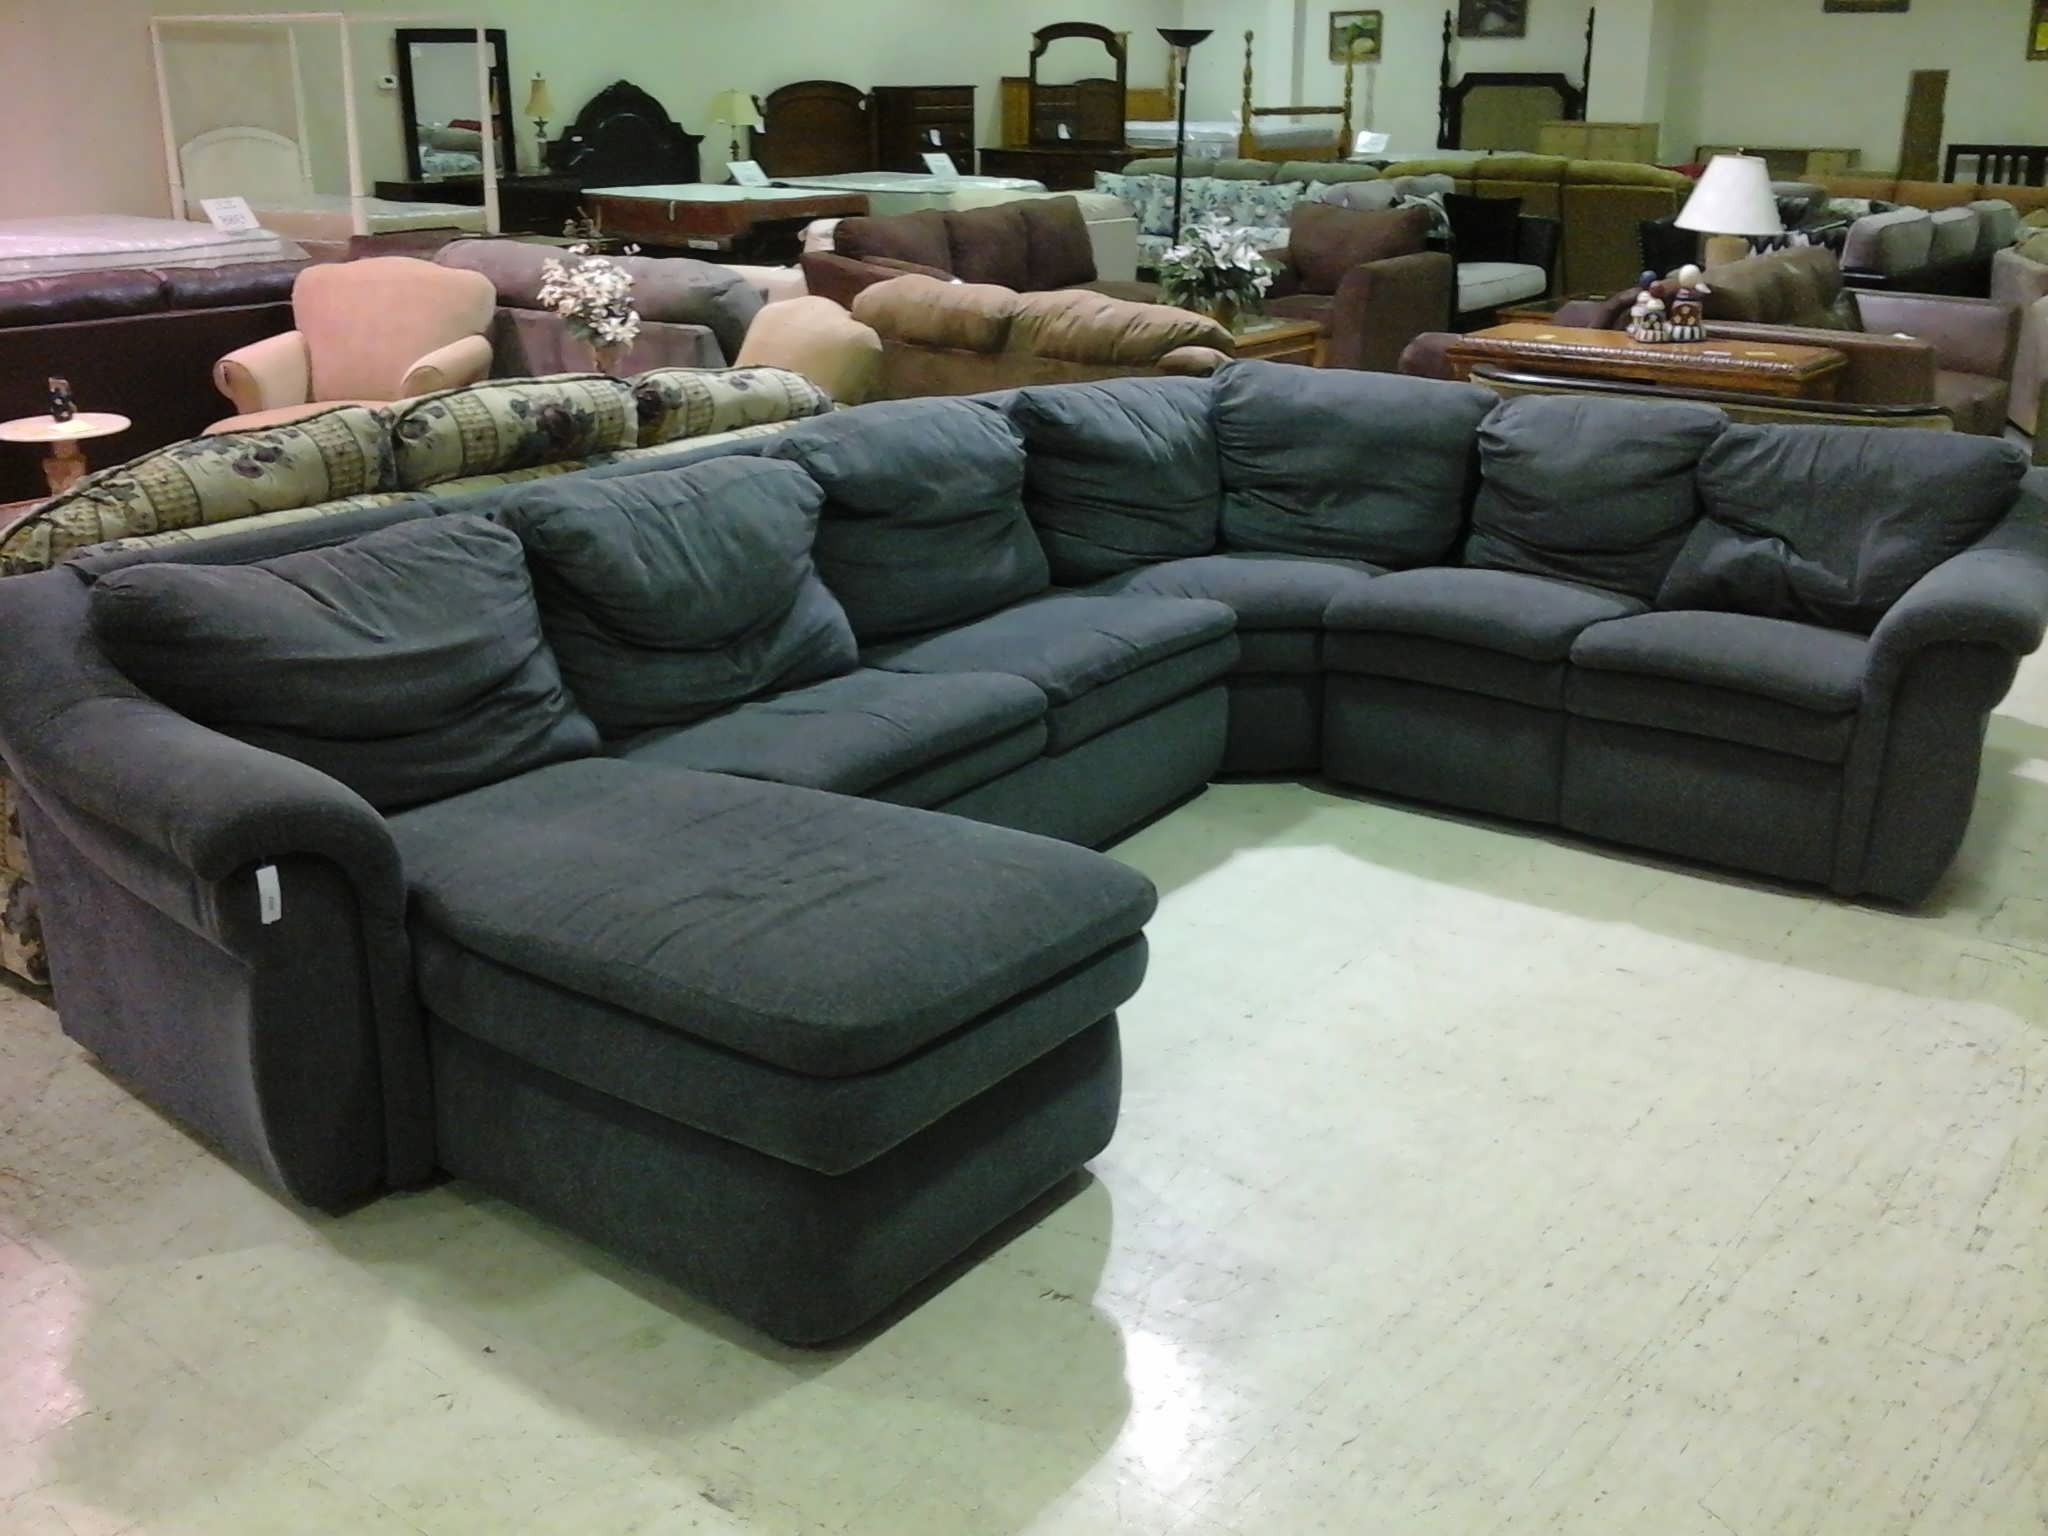 Sofa : Couch Sectionals Chaise Sofa Reclining Sectional With In 2017 Sectionals With Chaise And Recliner (View 12 of 15)